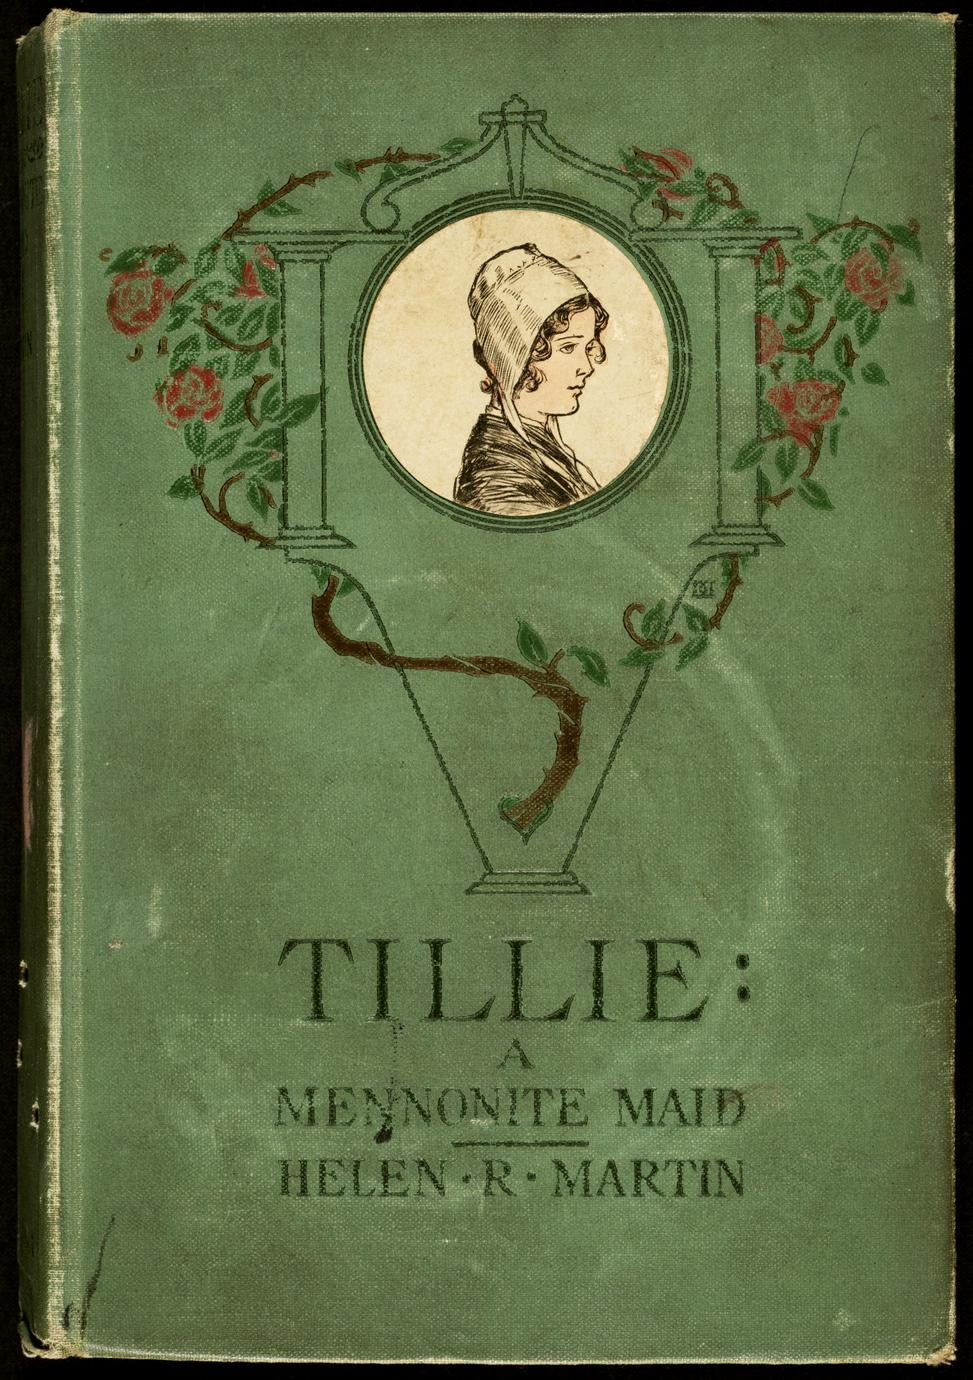 Tillie, a Mennonite maid : a story of the Pennsylvania Dutch (1 of 3)